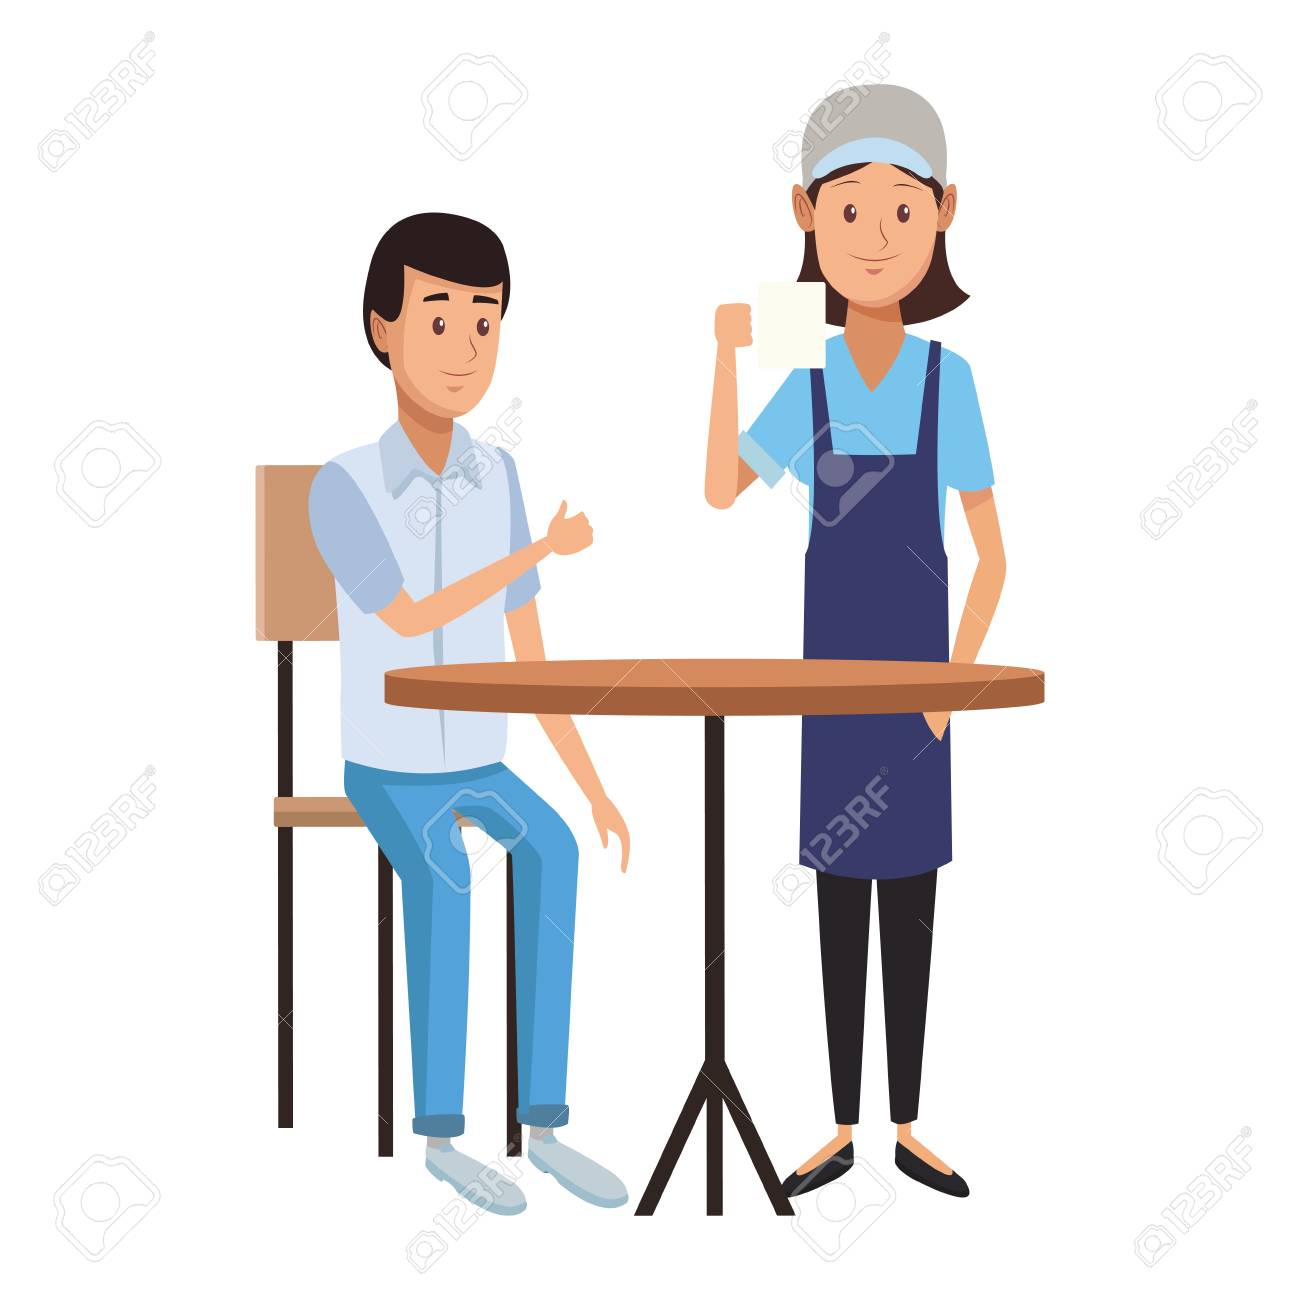 Restaurant Customer In Table And Waiter Taking Order Vector Illustration Royalty Free Cliparts Vectors And Stock Illustration Image 112713433